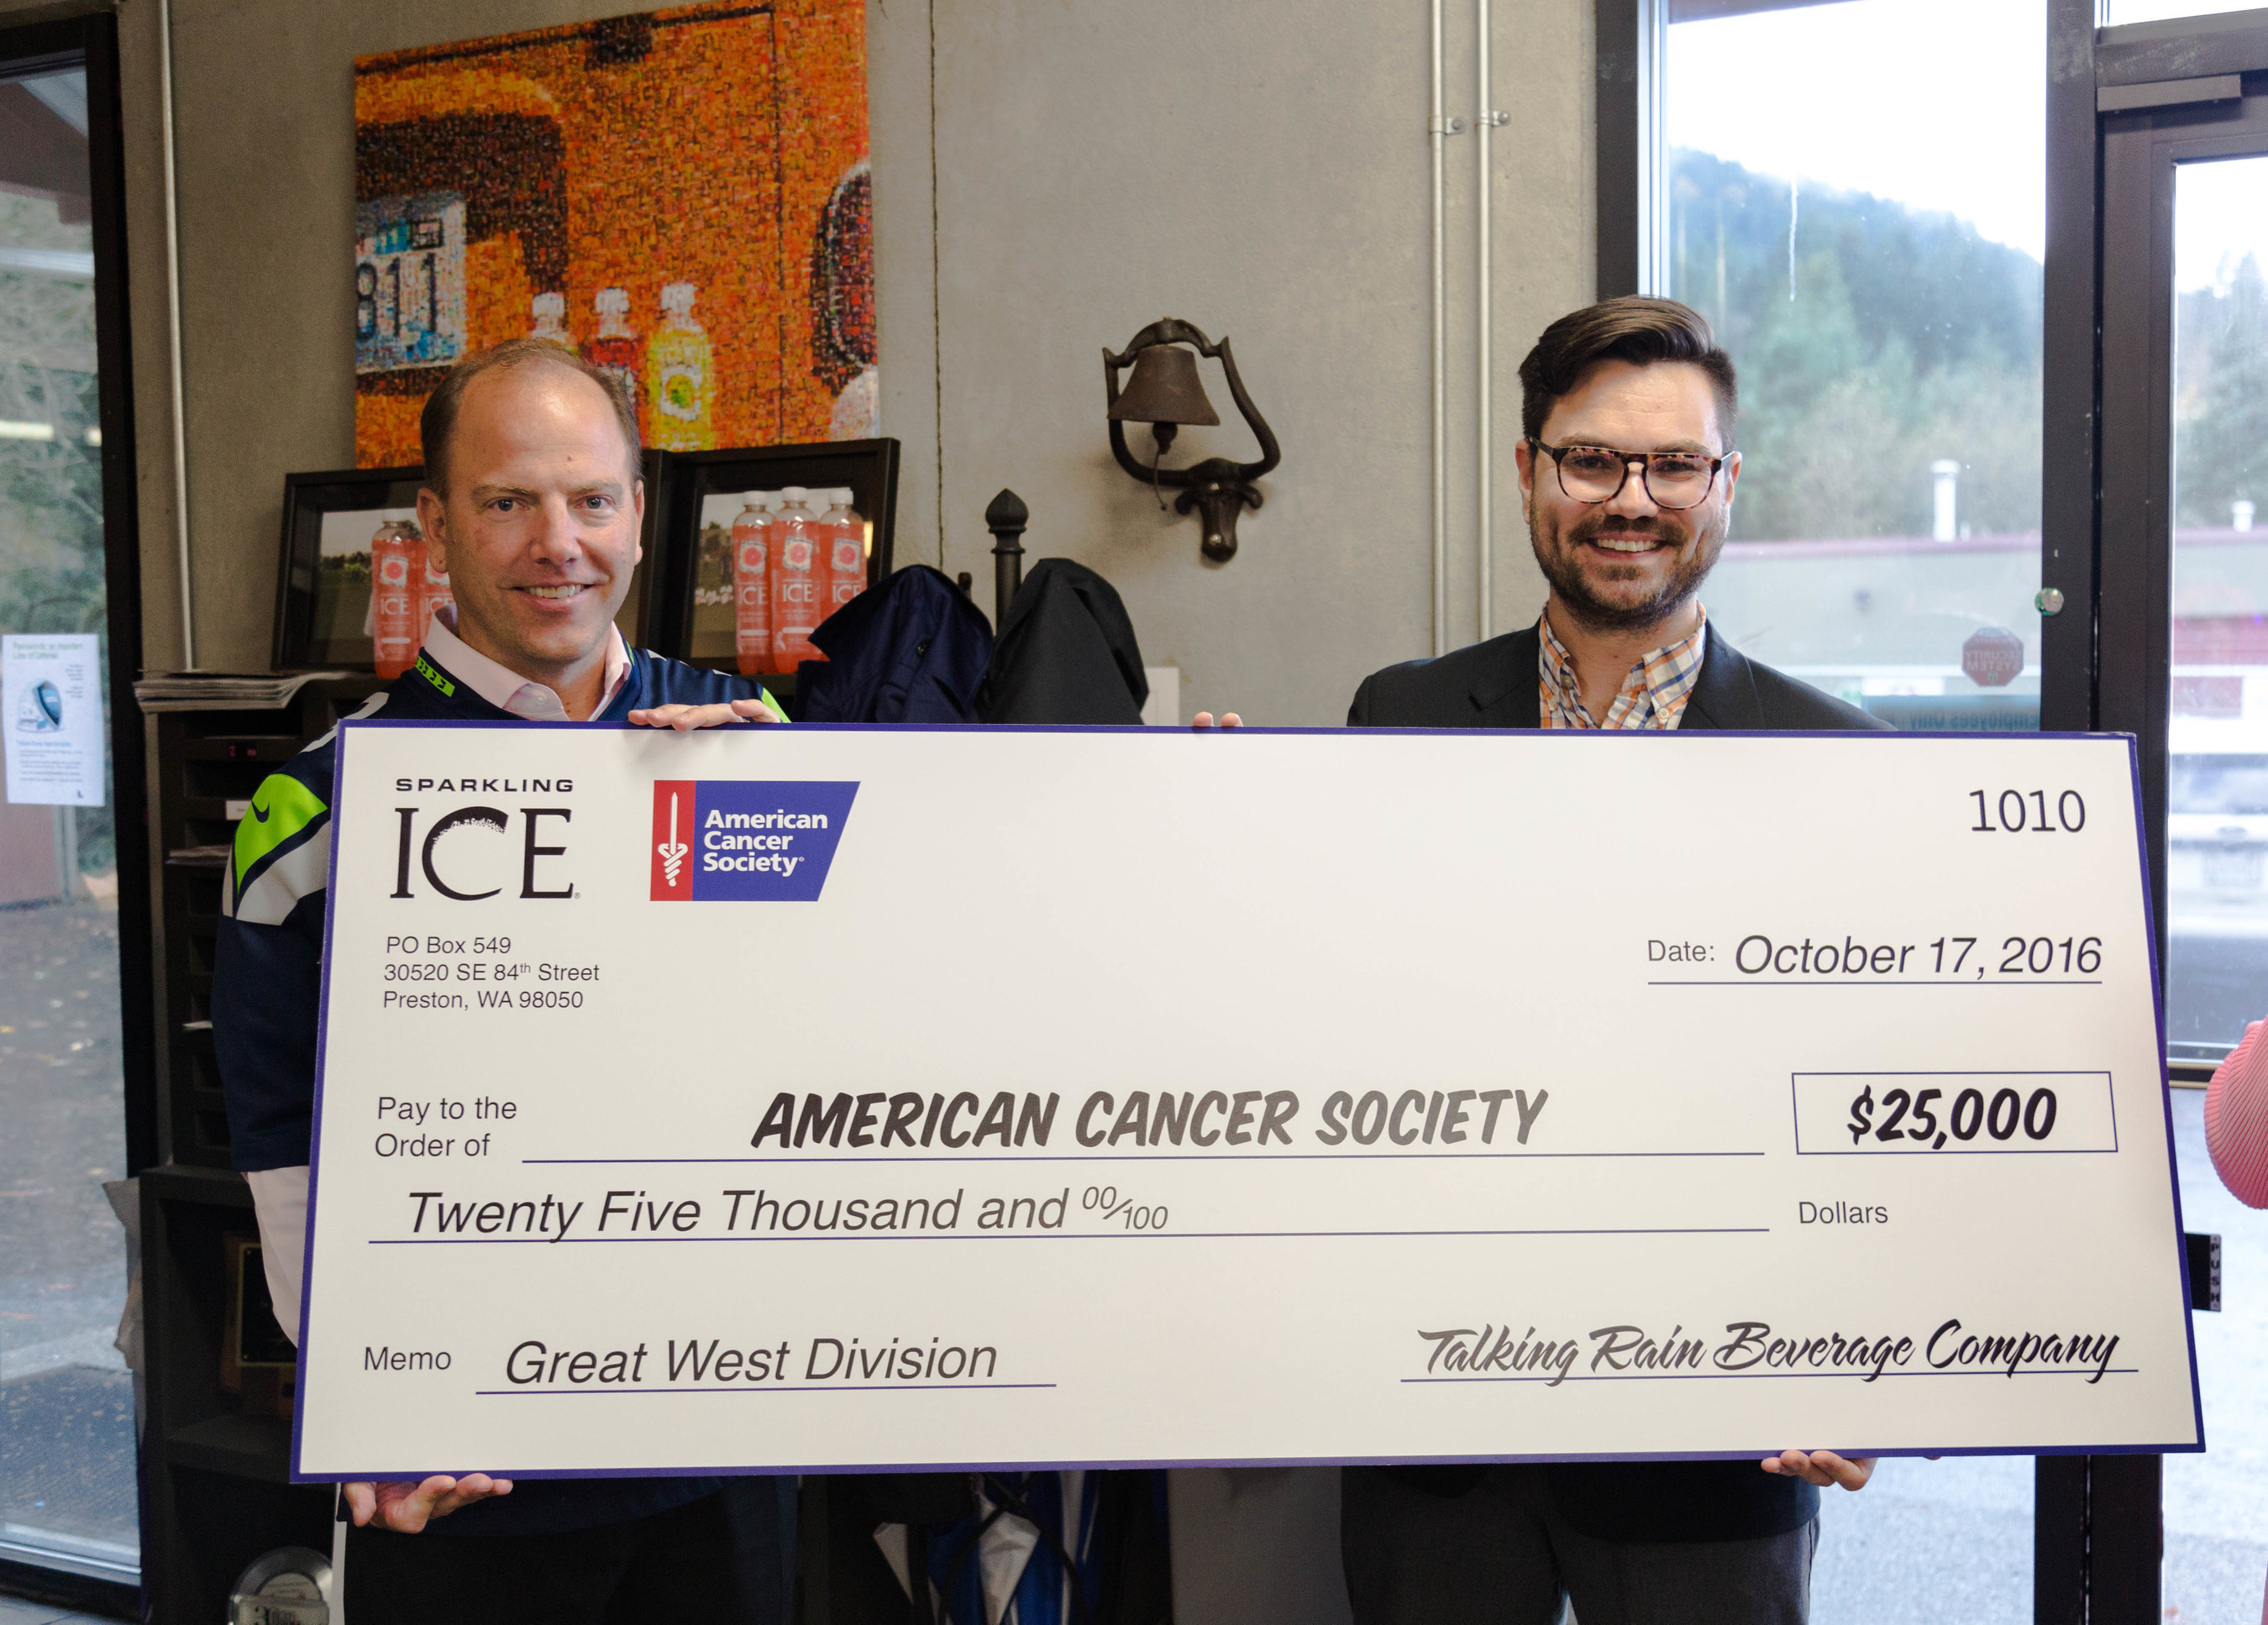 Kevin Klock, President and CEO of Talking Rain Beverage Co., presents check to Chase Carter of the American Cancer Society with the Great West Division.